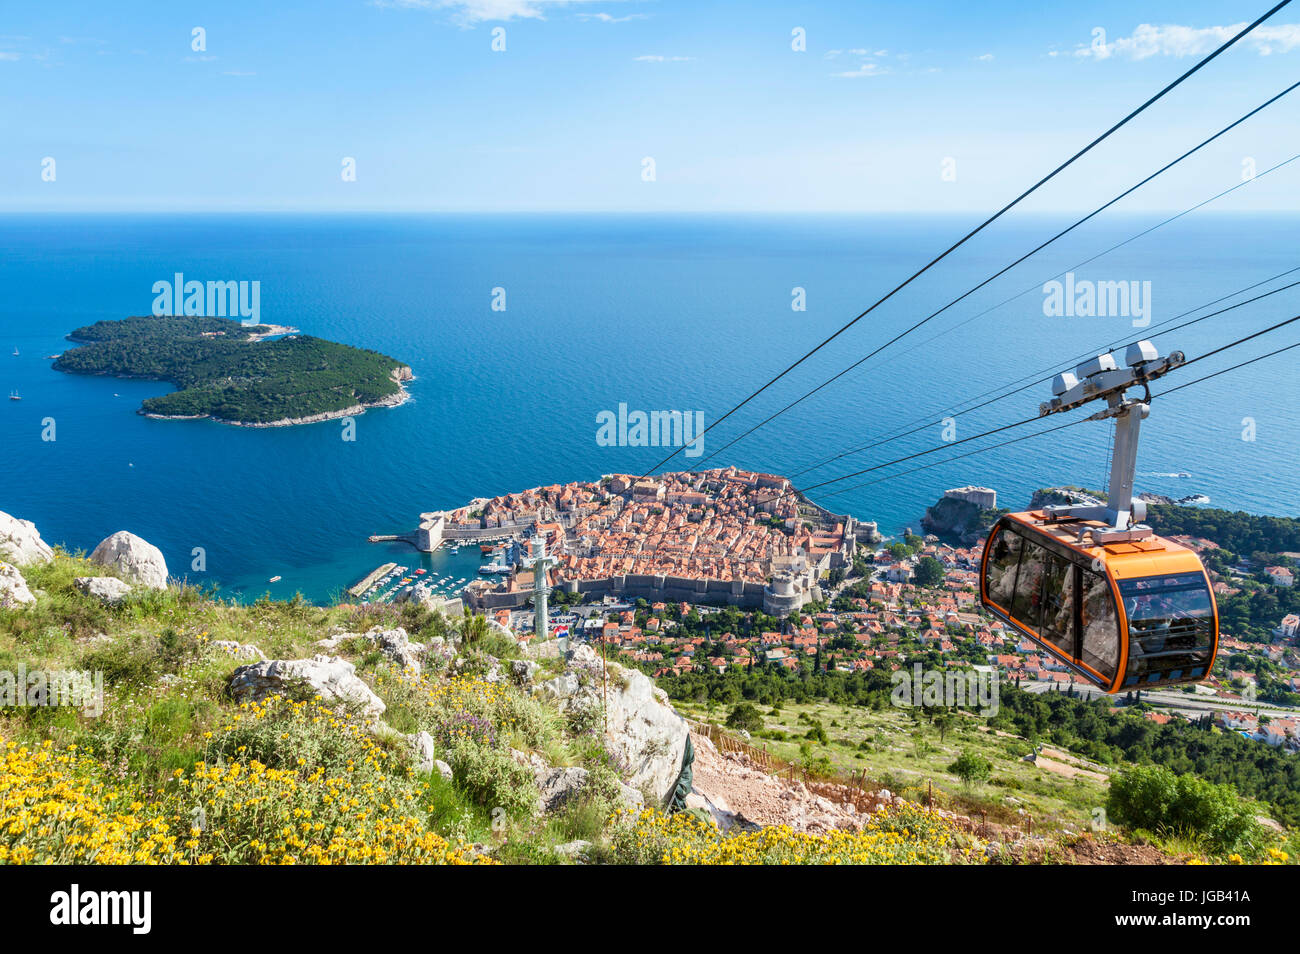 Dubrovnik Croatia Dalmatian coast dubrovnik Cable car up Mount Srd Dubrovnik Old Town aerial view Lokrum island - Stock Image